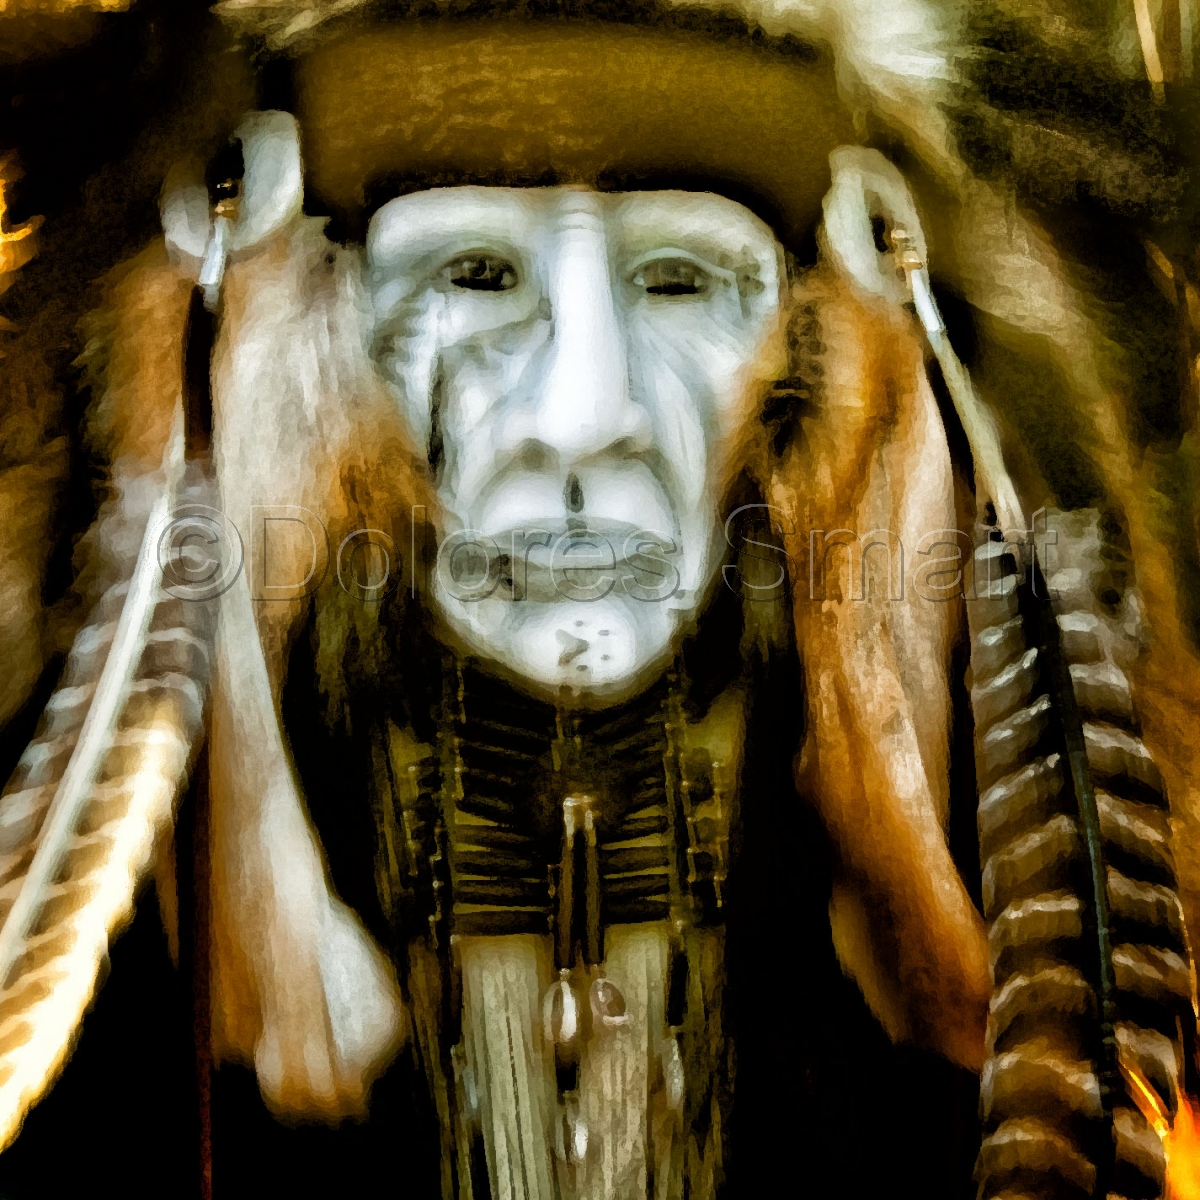 Dolores Smart photography, color, graphic face (large view)